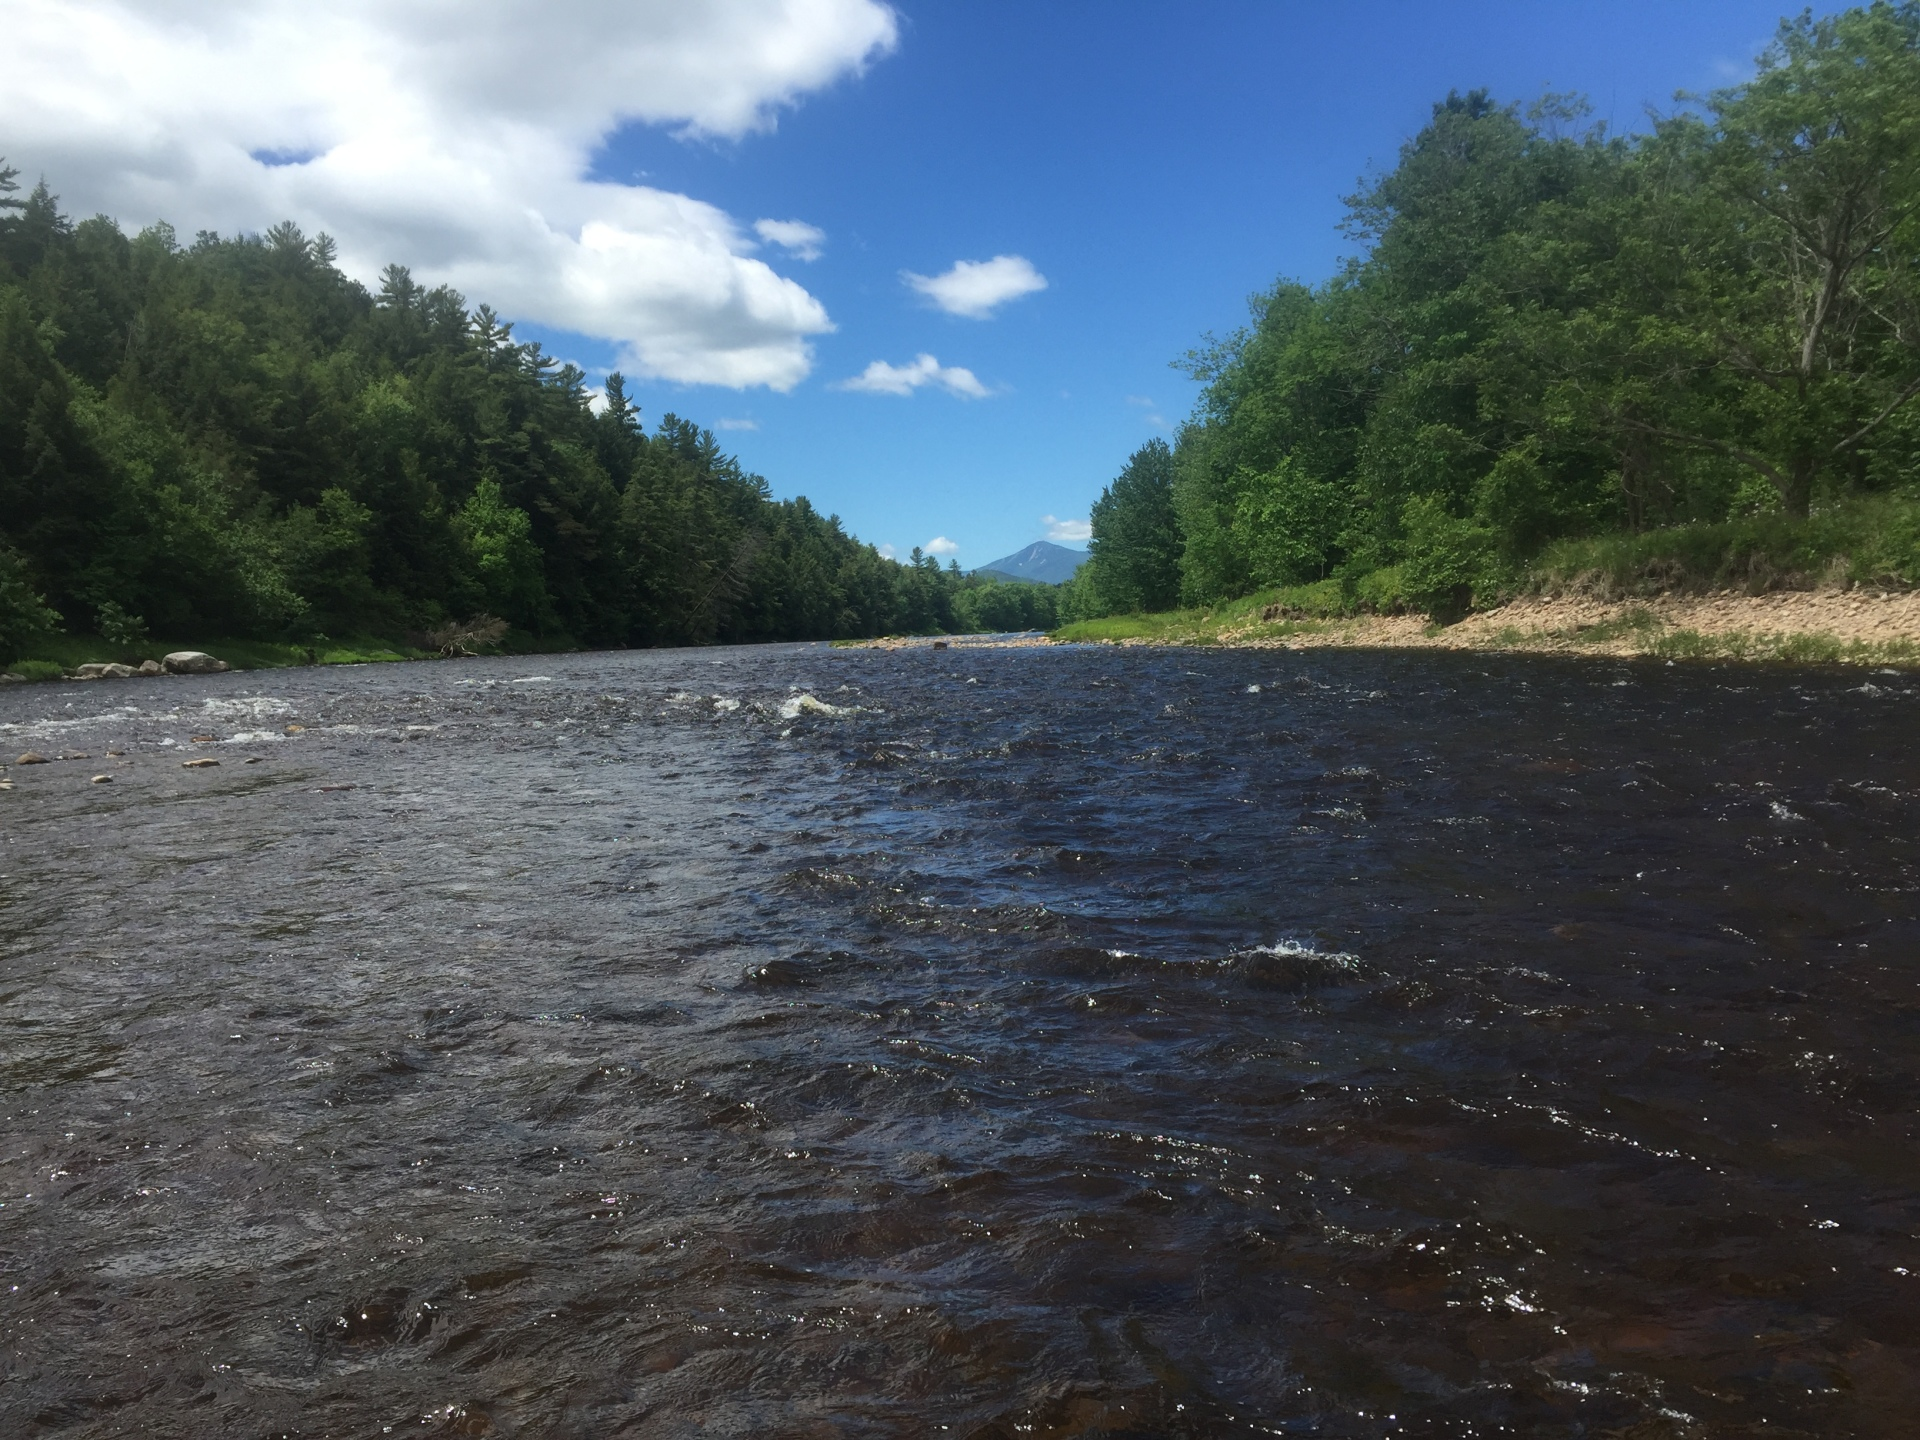 AuSable river down river frrm the town of Au Sable Forks